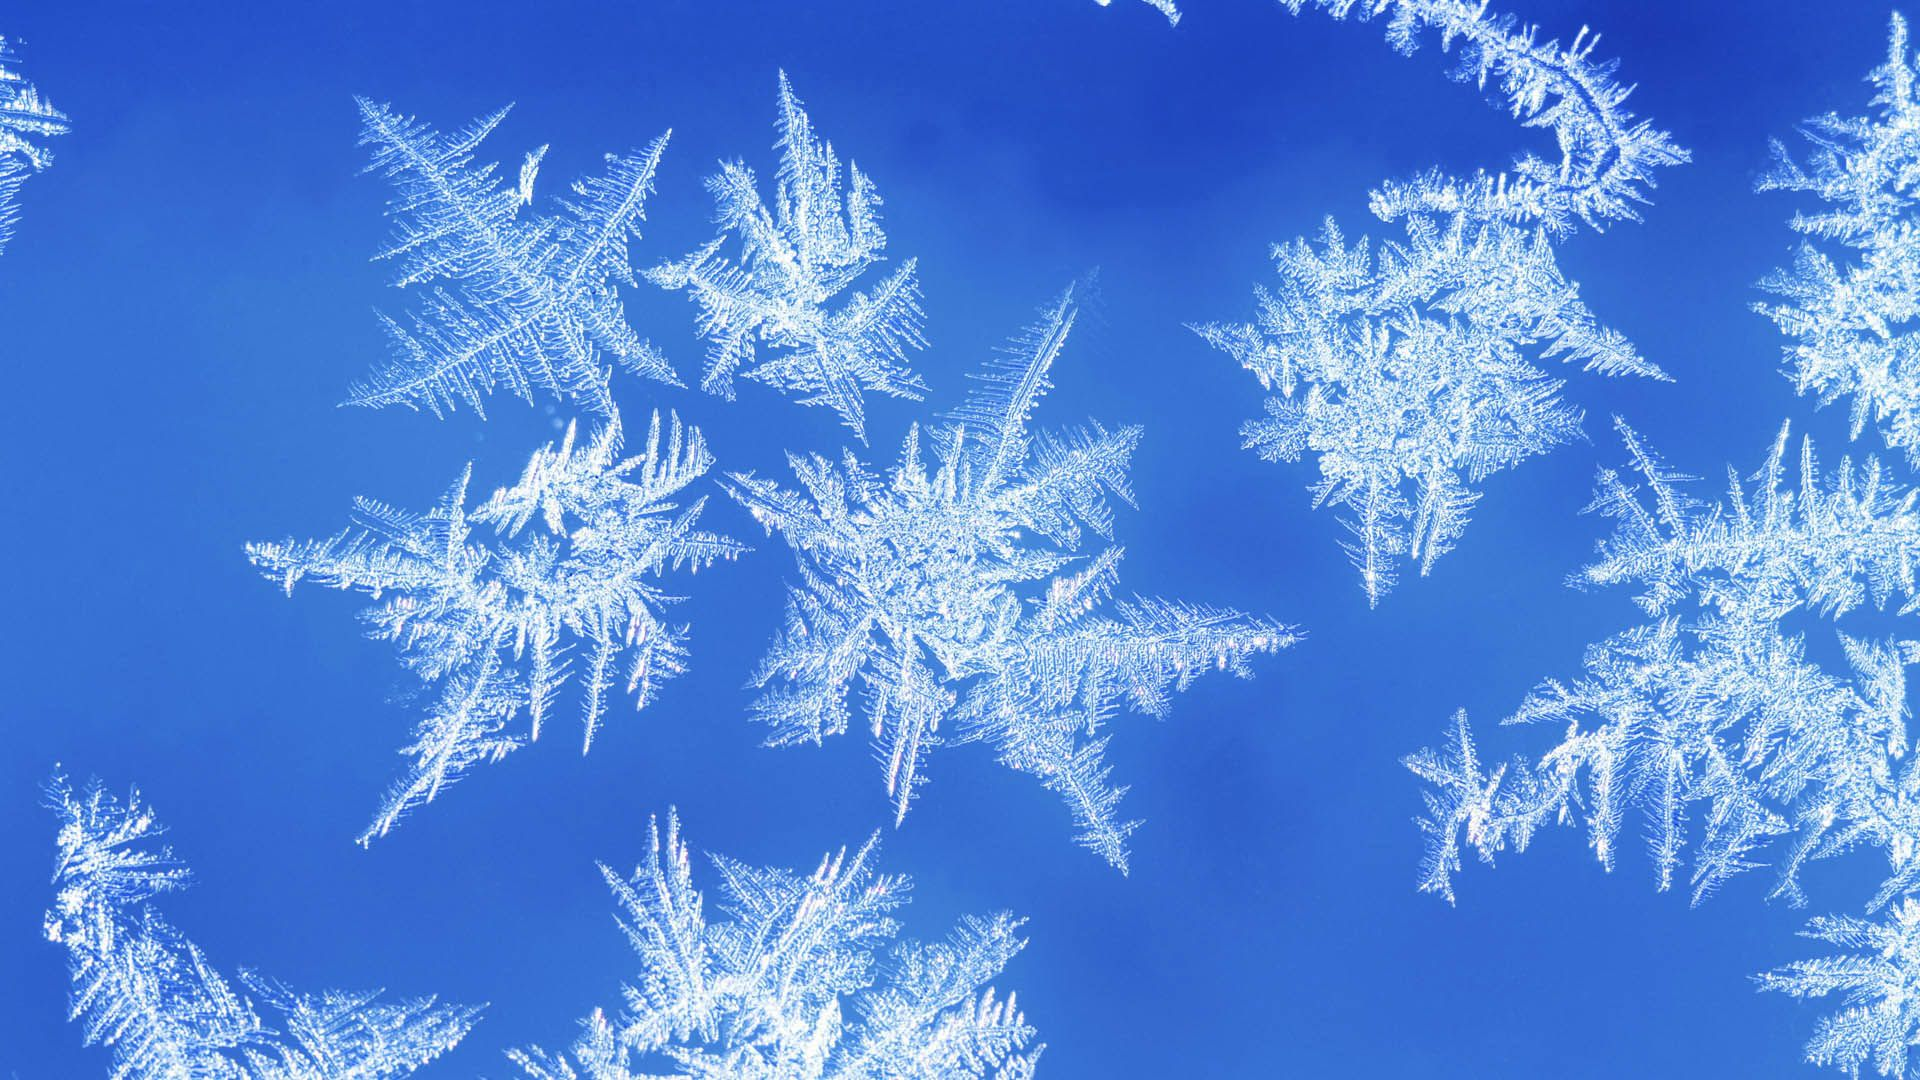 Snowflakes hd wallpapers high definition wallpapers hd snowflakes hd wallpapers voltagebd Choice Image